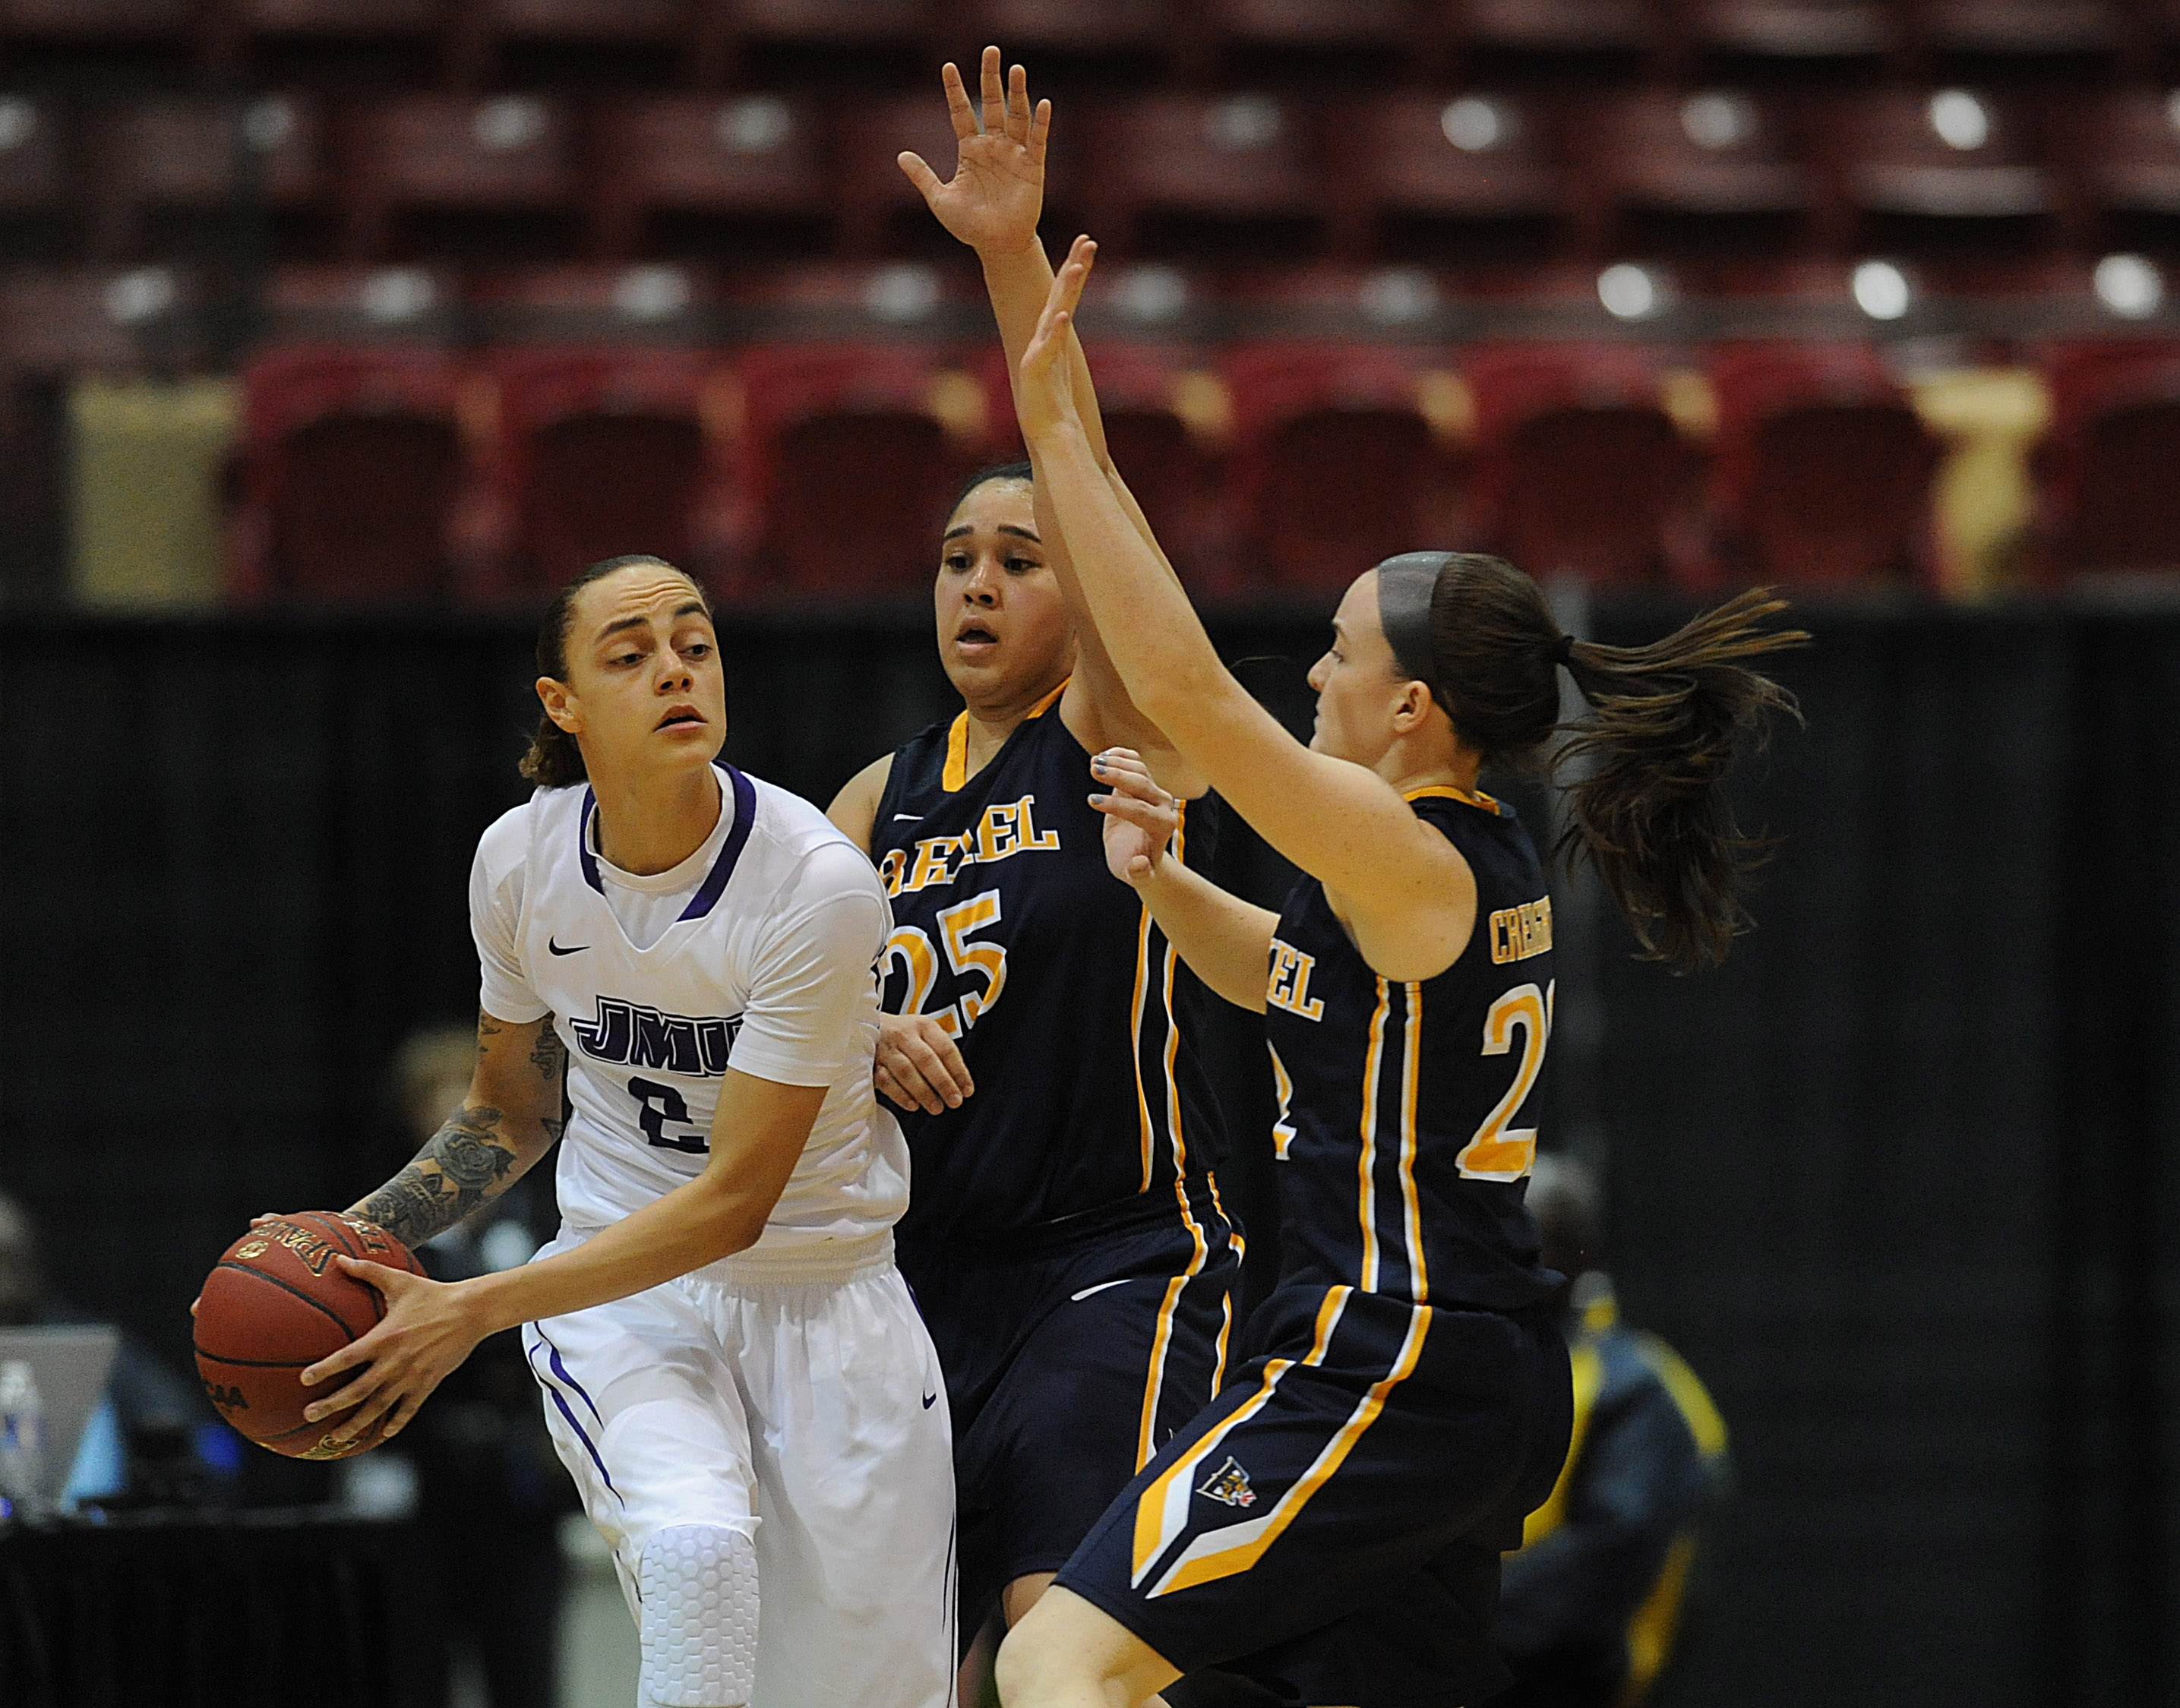 James Madison's Destiny Jones, left, looks to pass under pressure from  Drexel's  Meghan Creighton,, right, and Kelsi Lidge in the first half of an NCAA college basketball game in the championship of the Colonial Athletic Association women's tournament, S